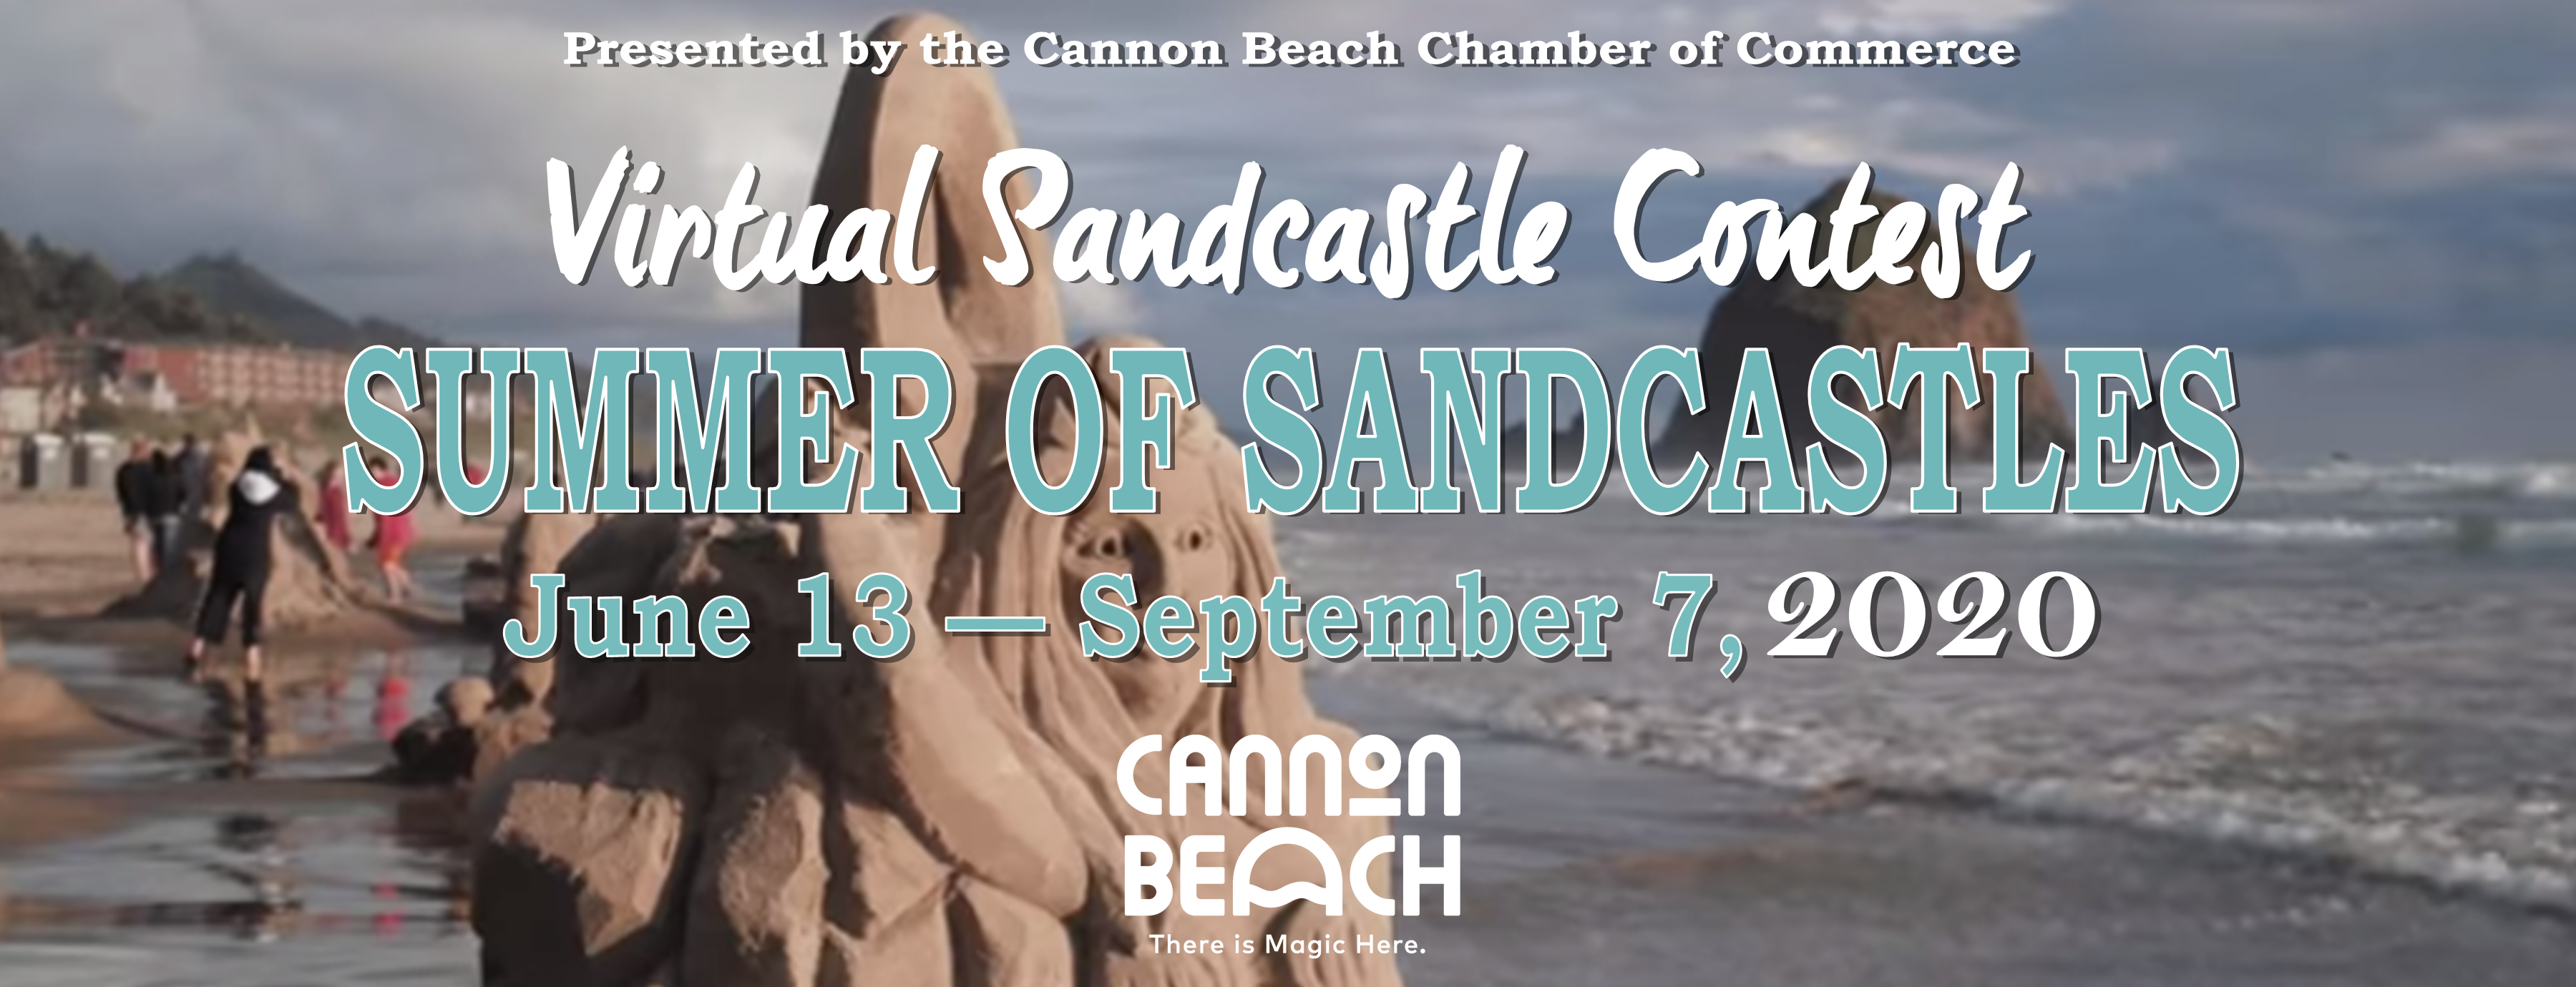 Virtual Sandcastle Contest